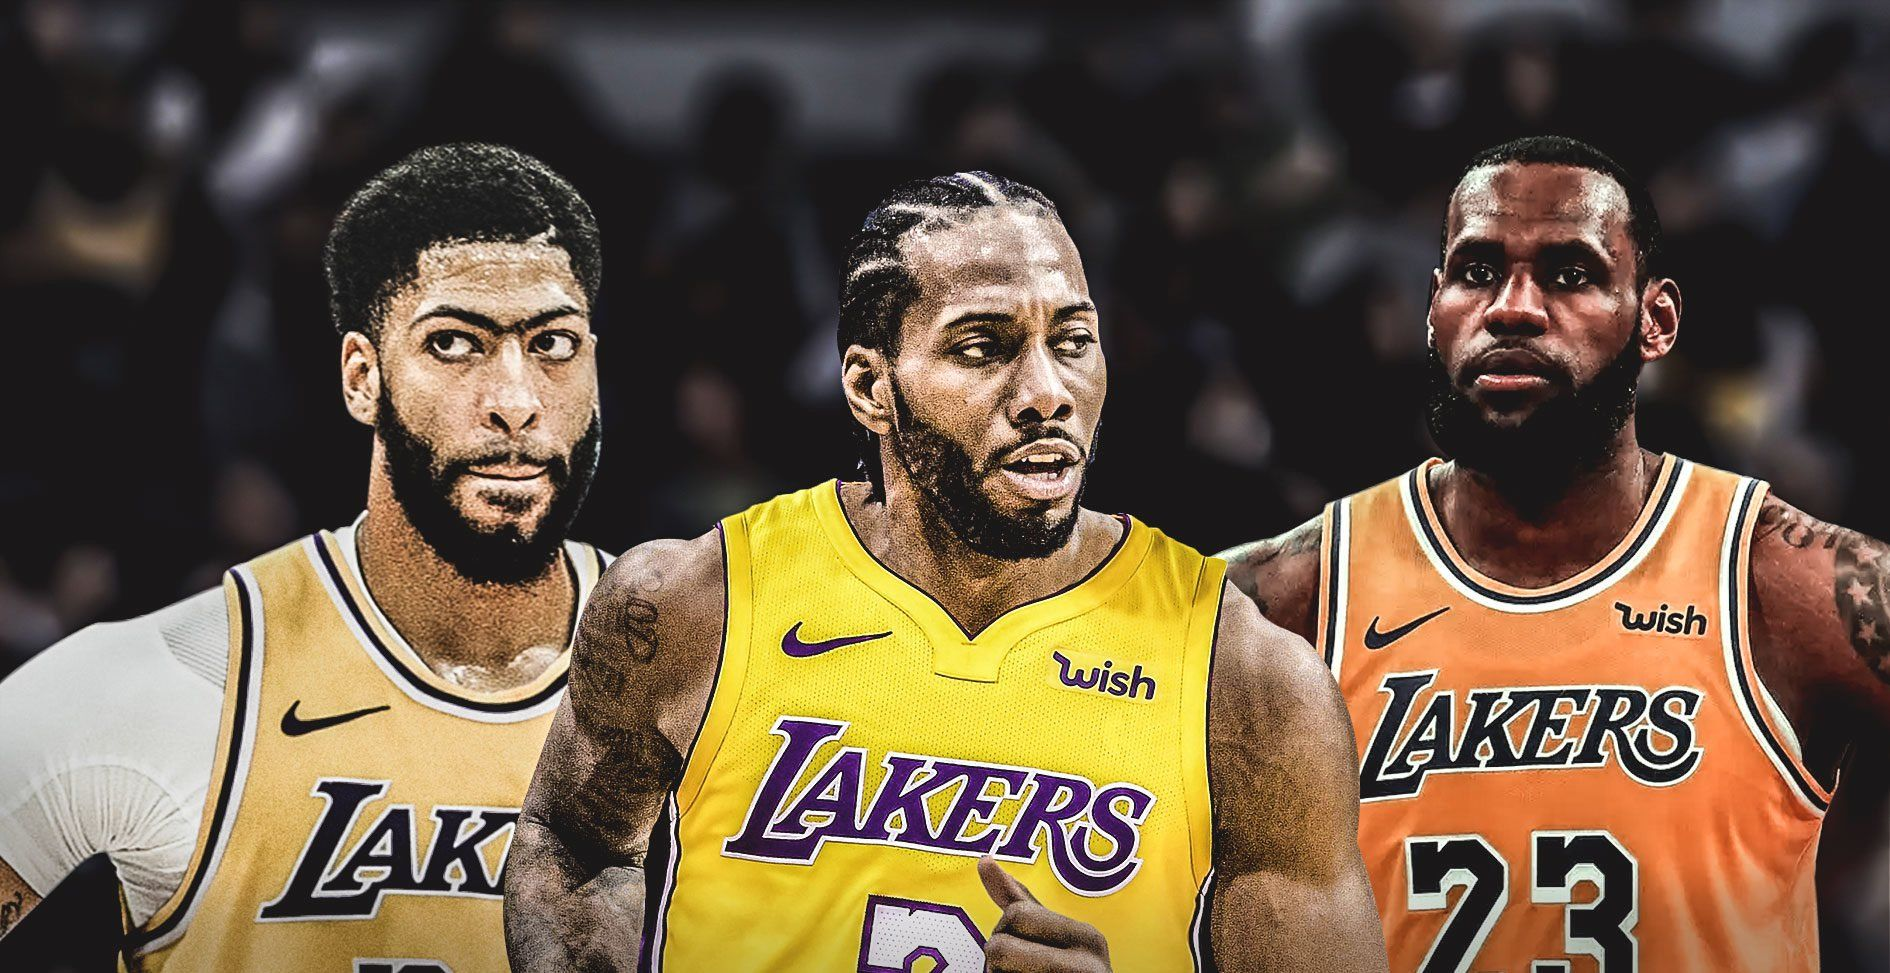 Nba Finals 2020 Odds And Prediction Lakers Win Is Certain